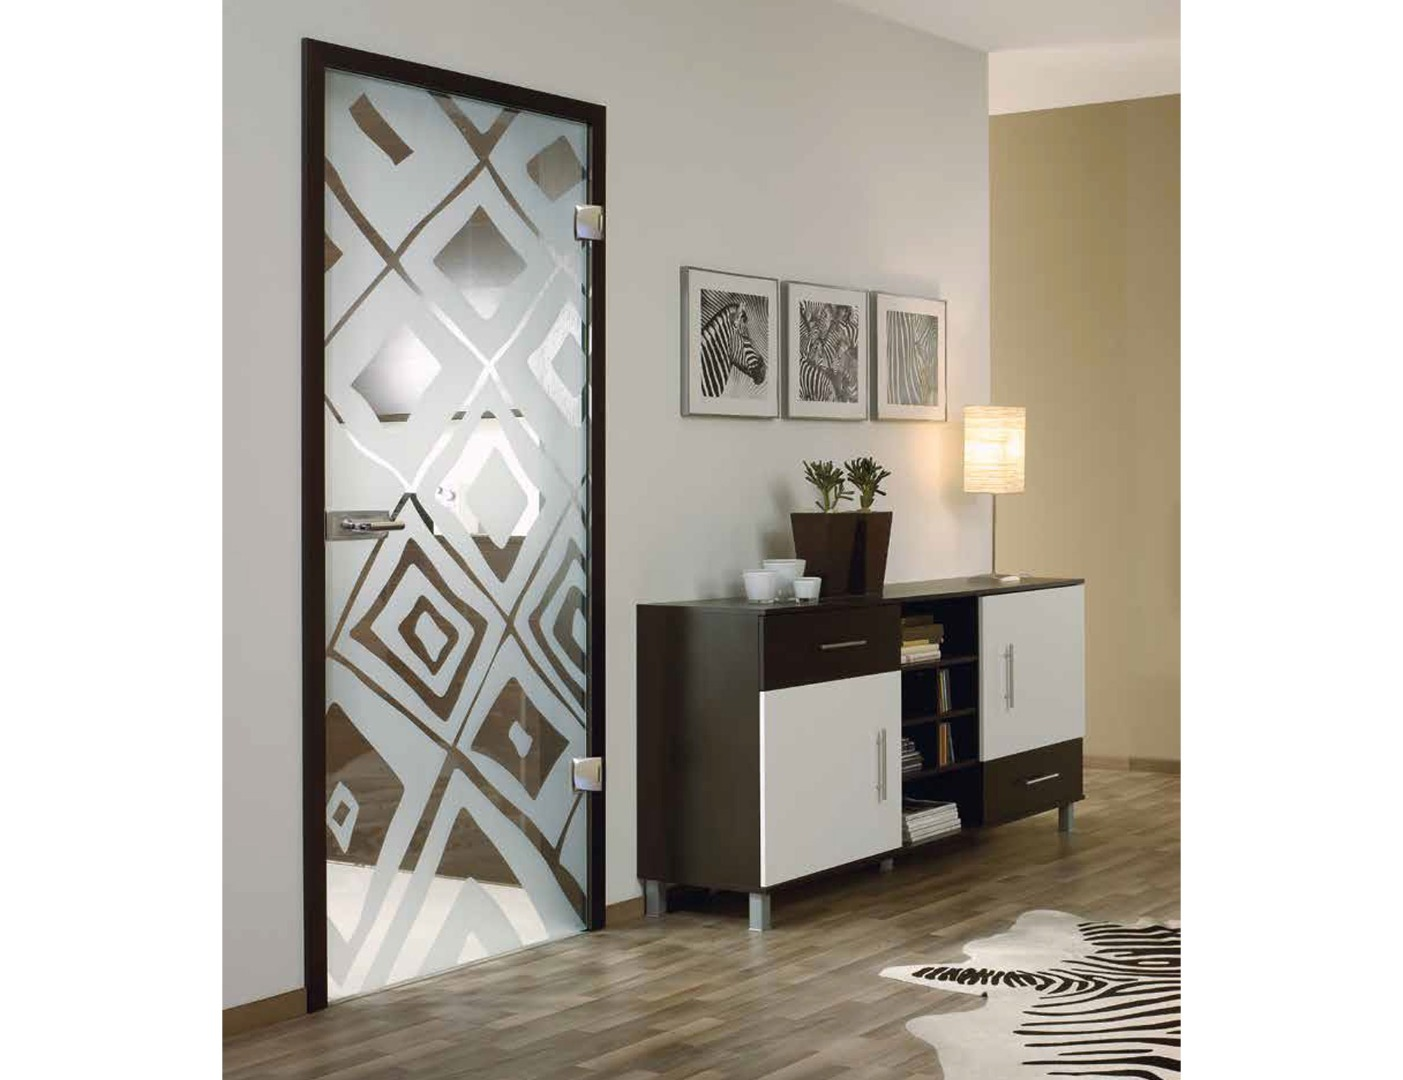 Made to measure interior doors gallery glass door design glass internal doors full glass door glass doors made to measure glass internal doors planetlyrics gallery planetlyrics Gallery